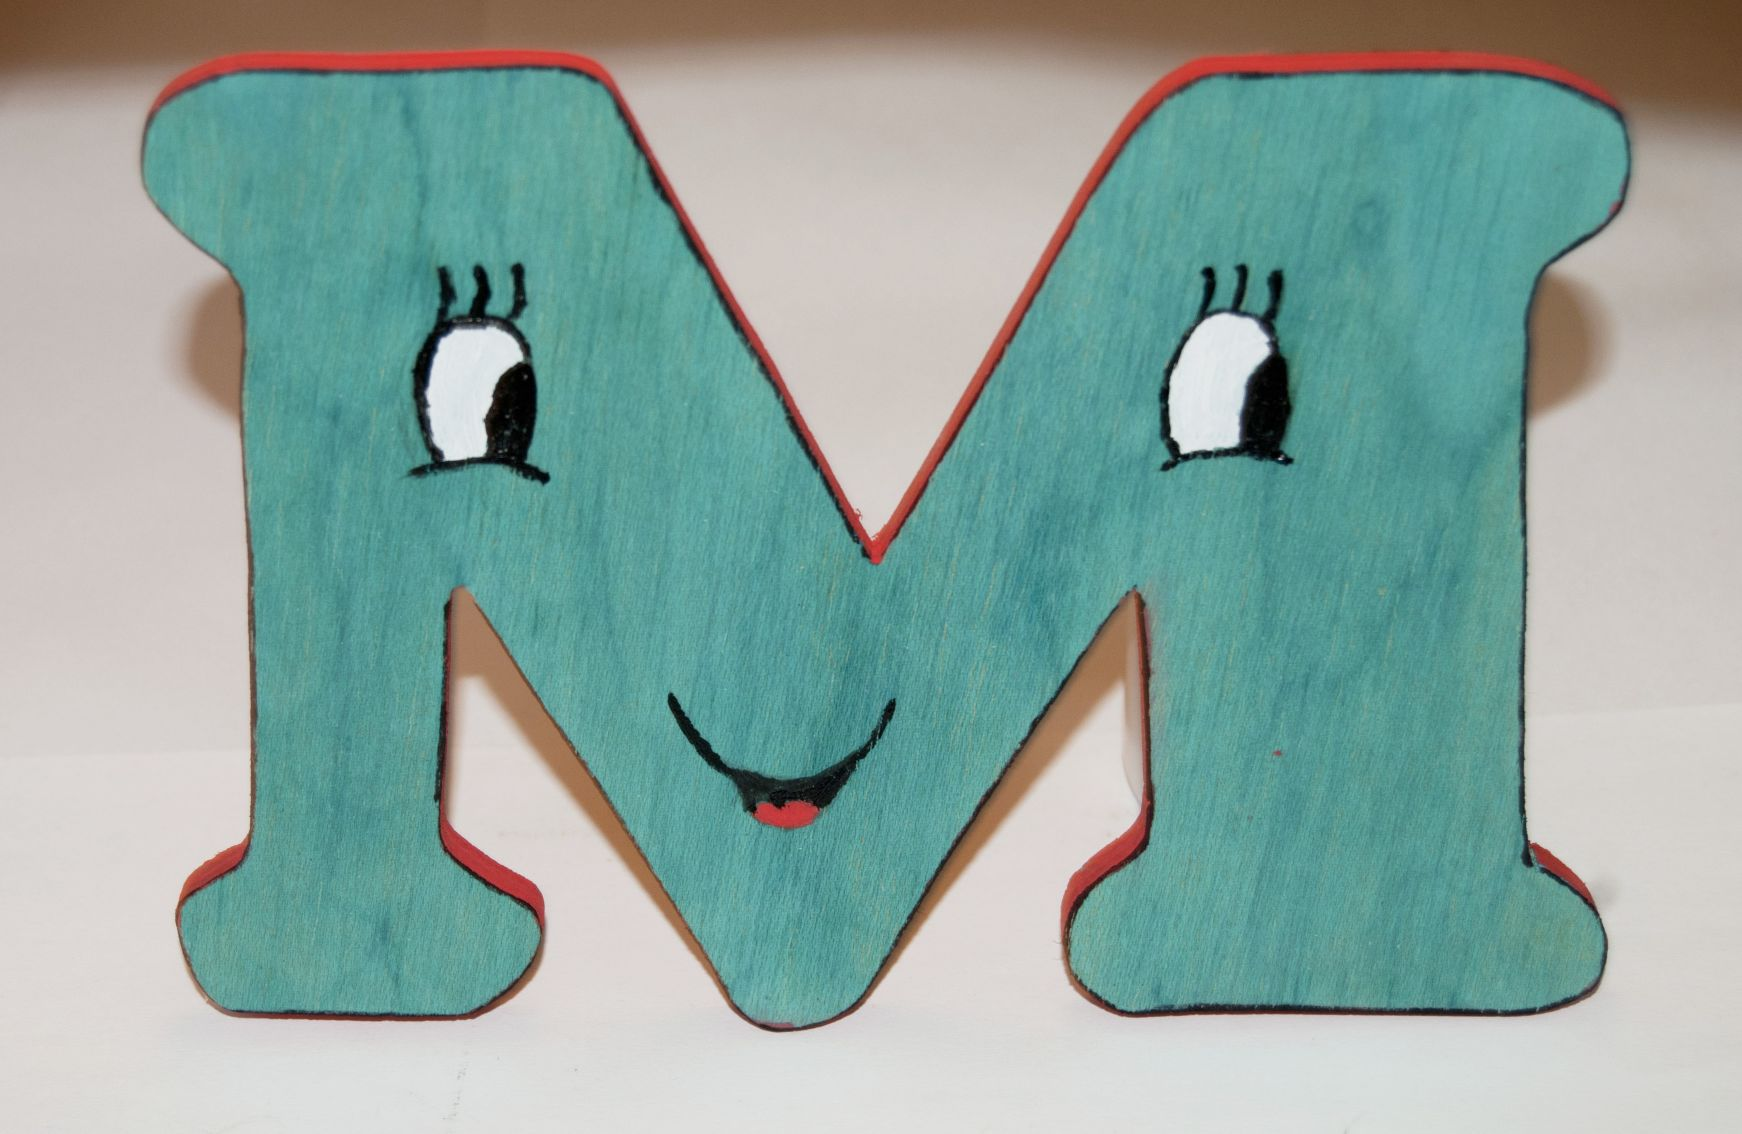 Letra madera. wooden letter